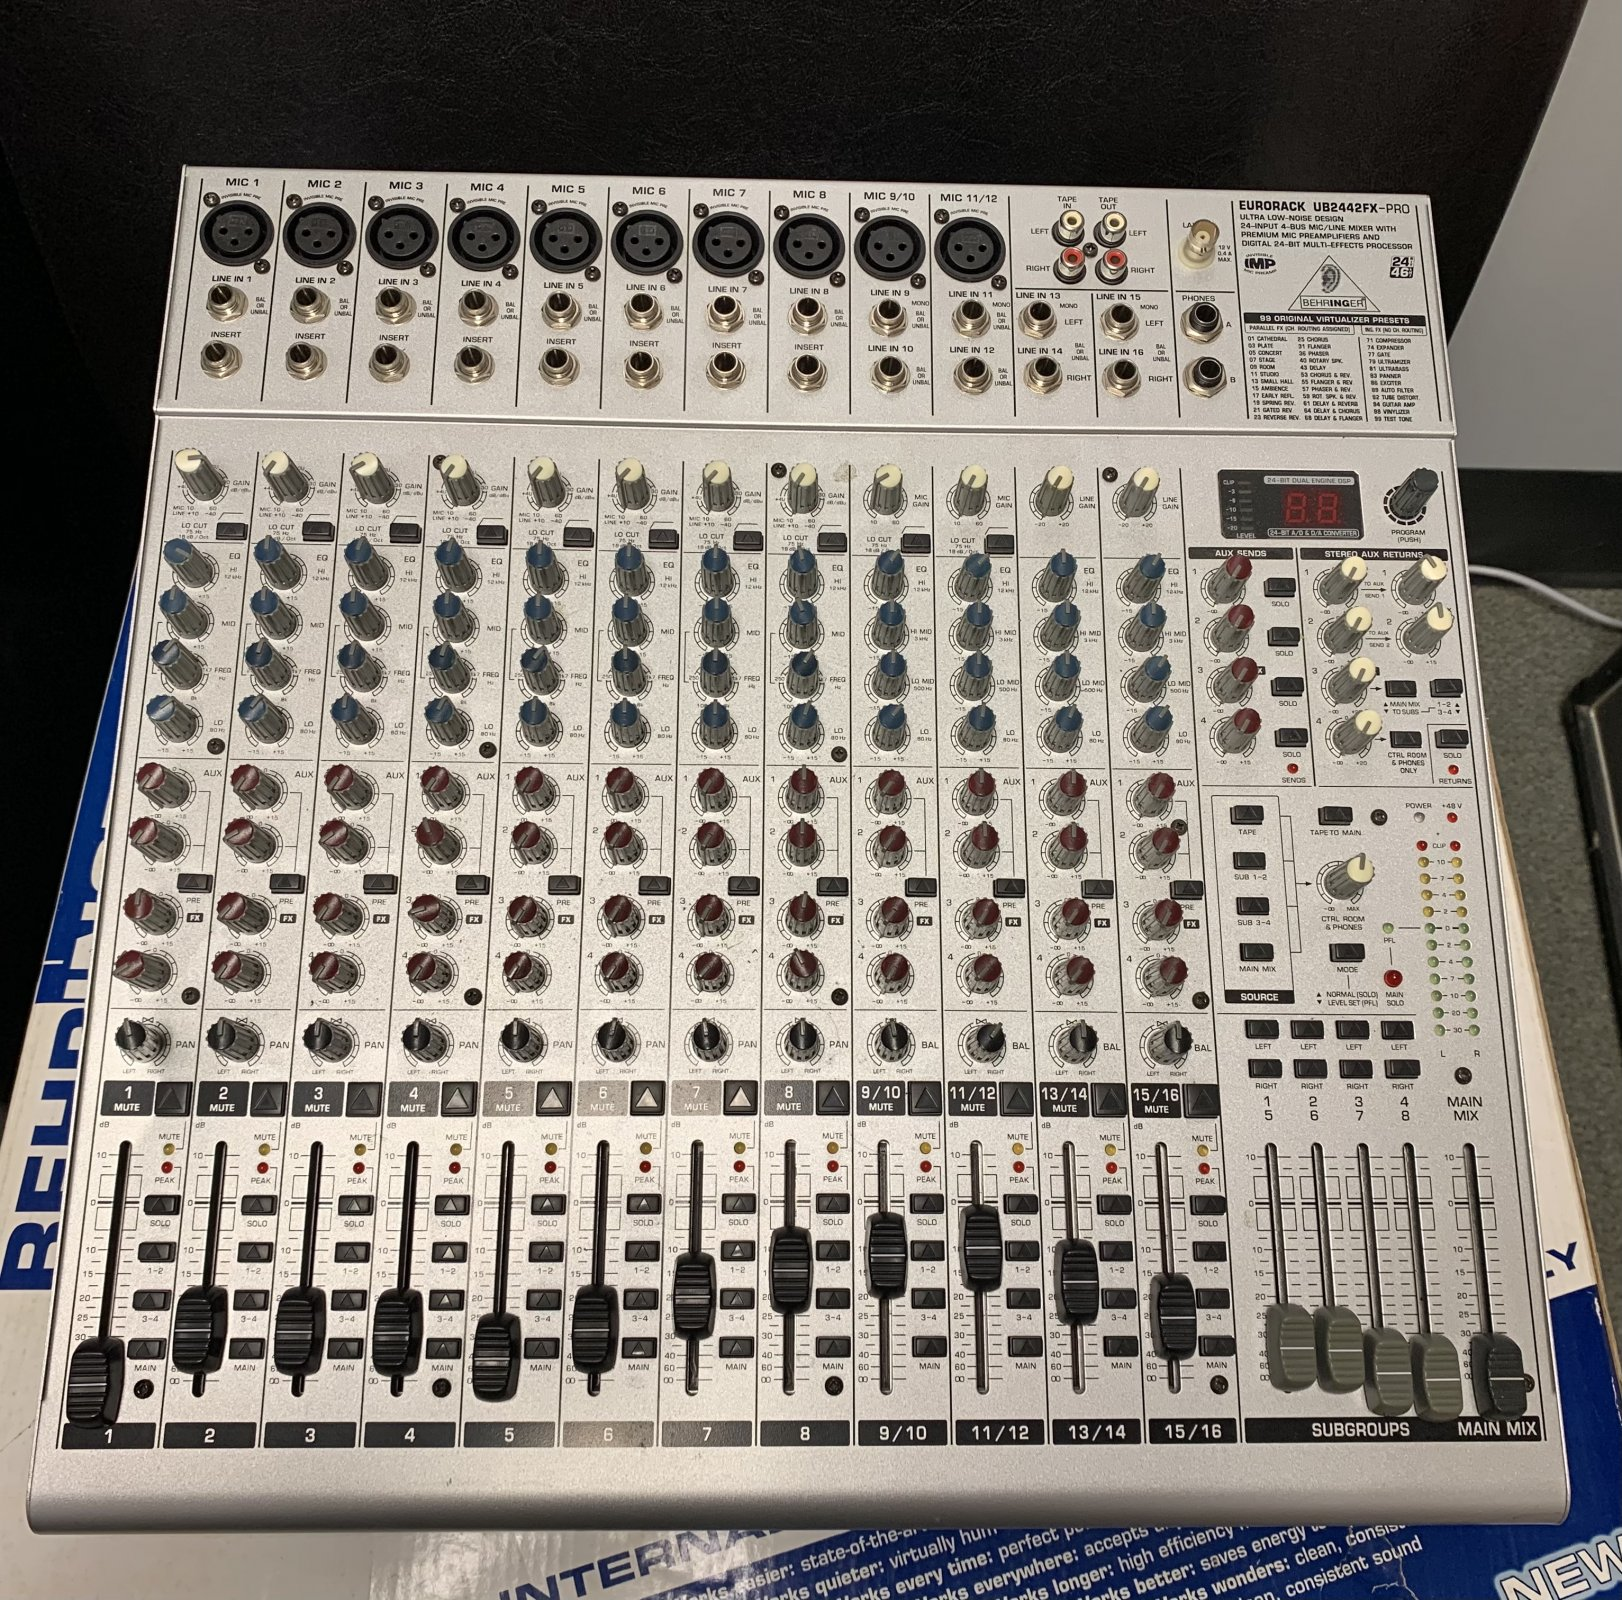 Used (Consignment) Behringer Eurodesk UB2442FX-PRO Mixer